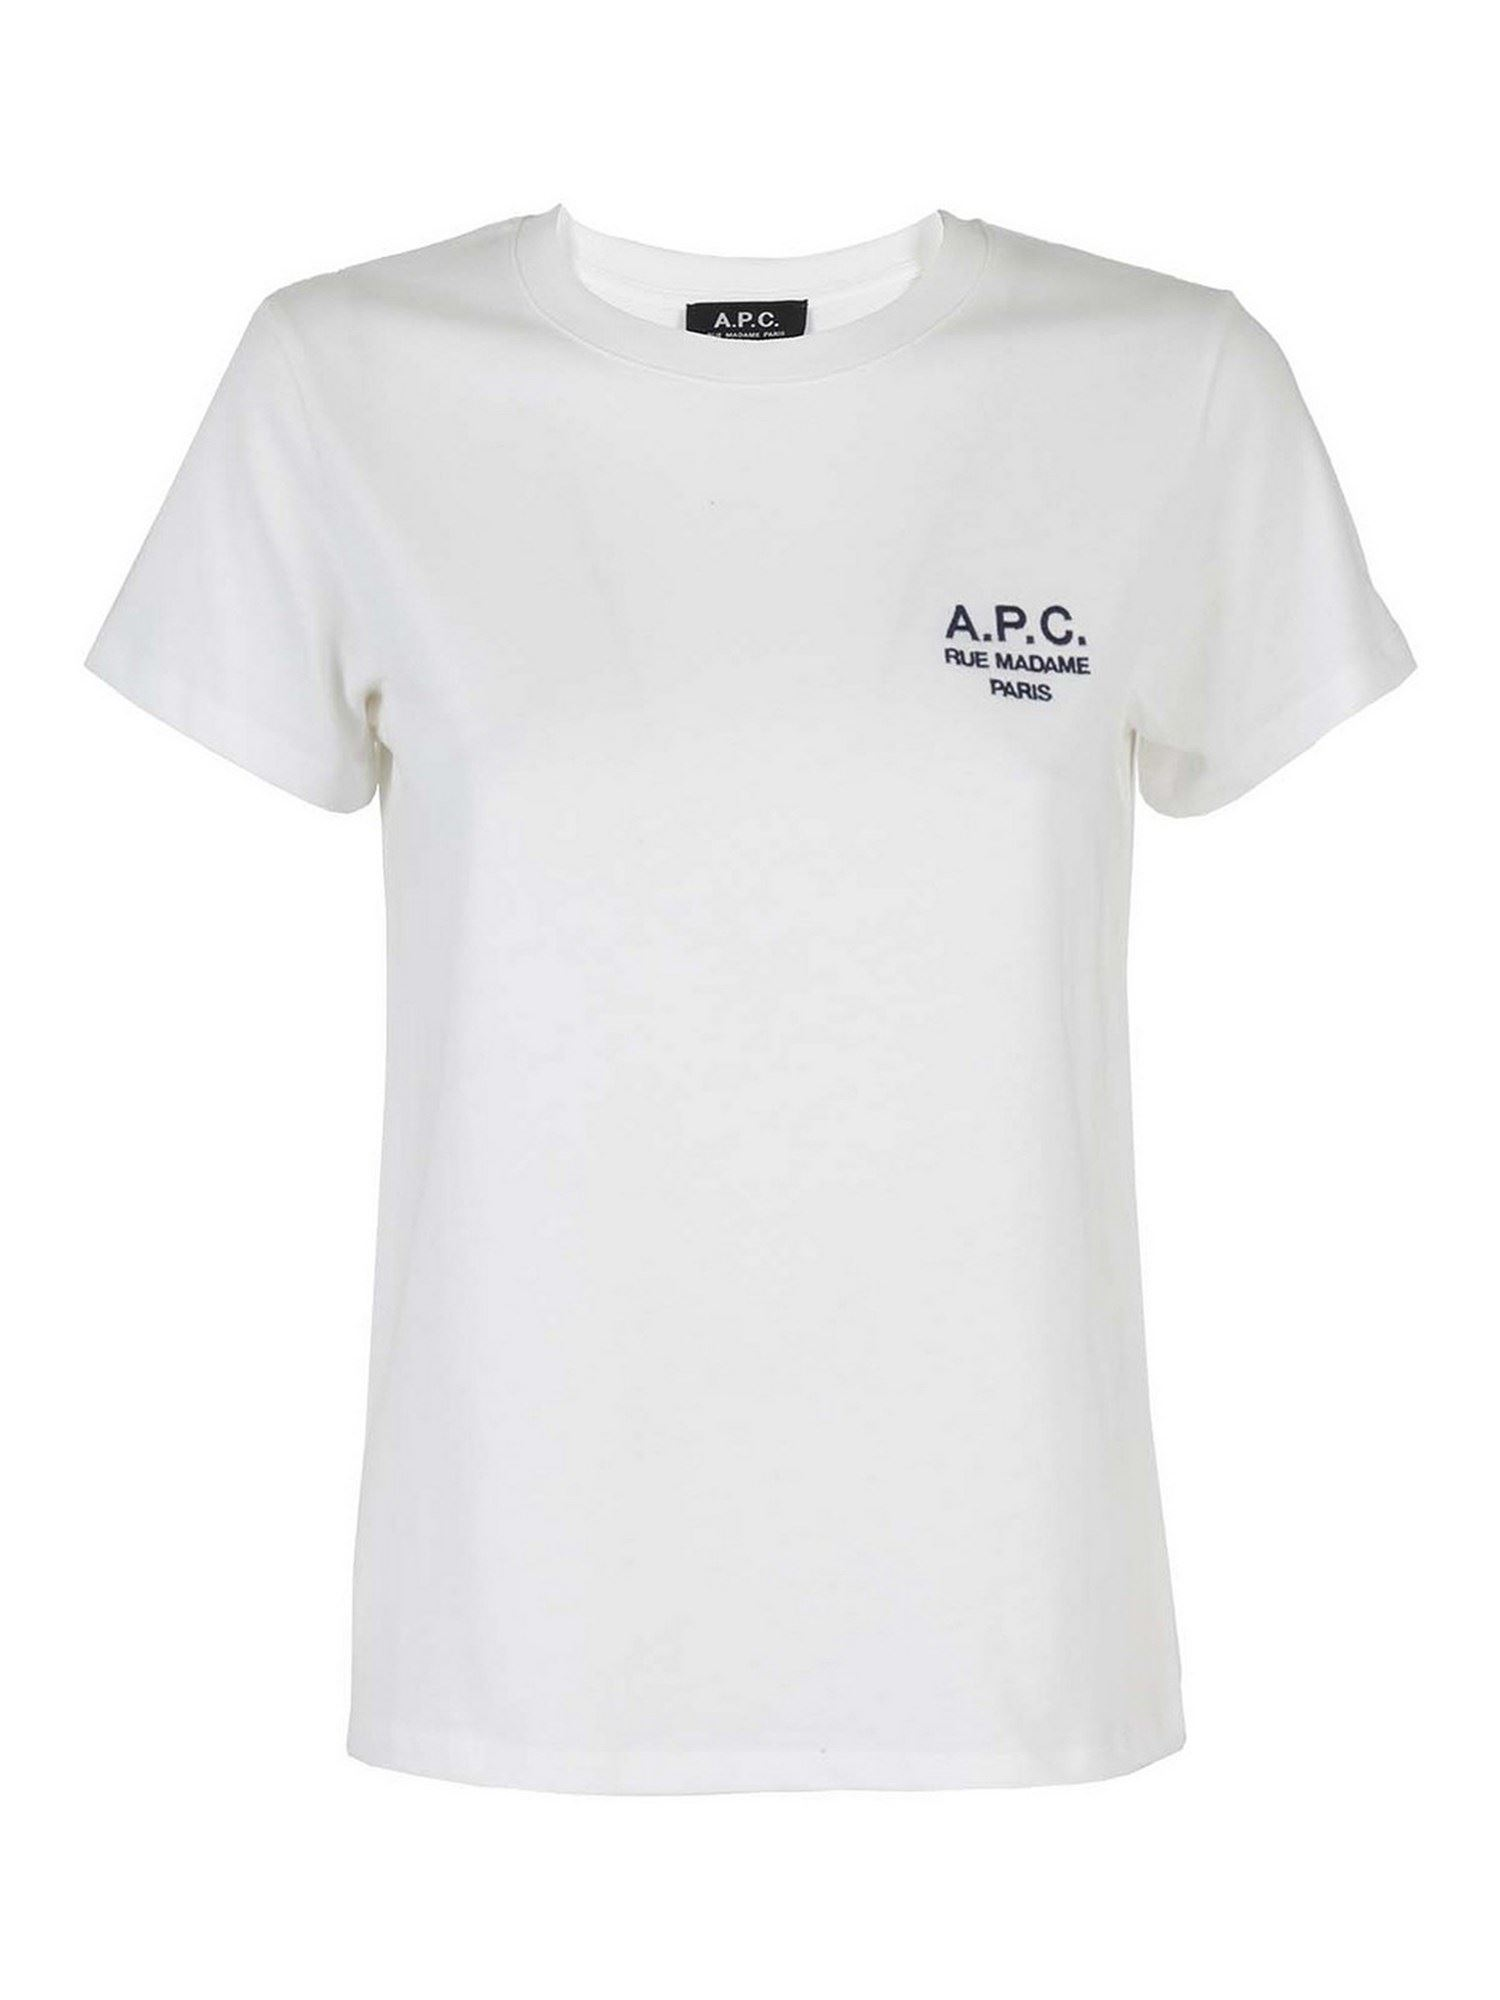 A.P.C. DENISE T-SHIRT IN WHITE